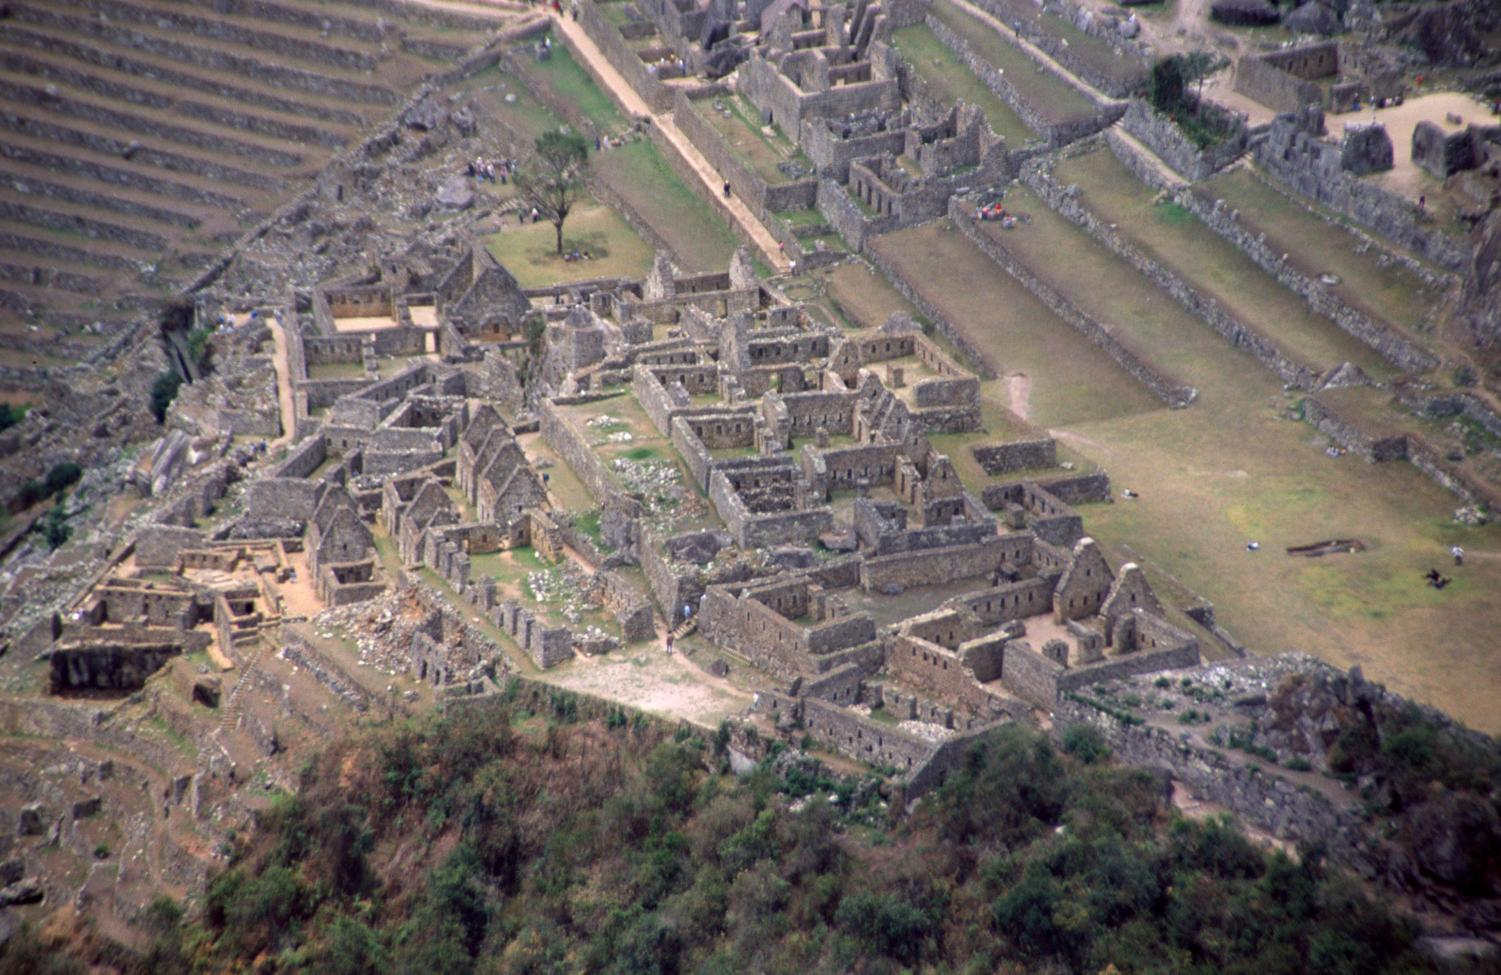 Machu Picchu in Perú. View of residential area and Central Square from the top of Wayna Picchu, taken October 6, 1998